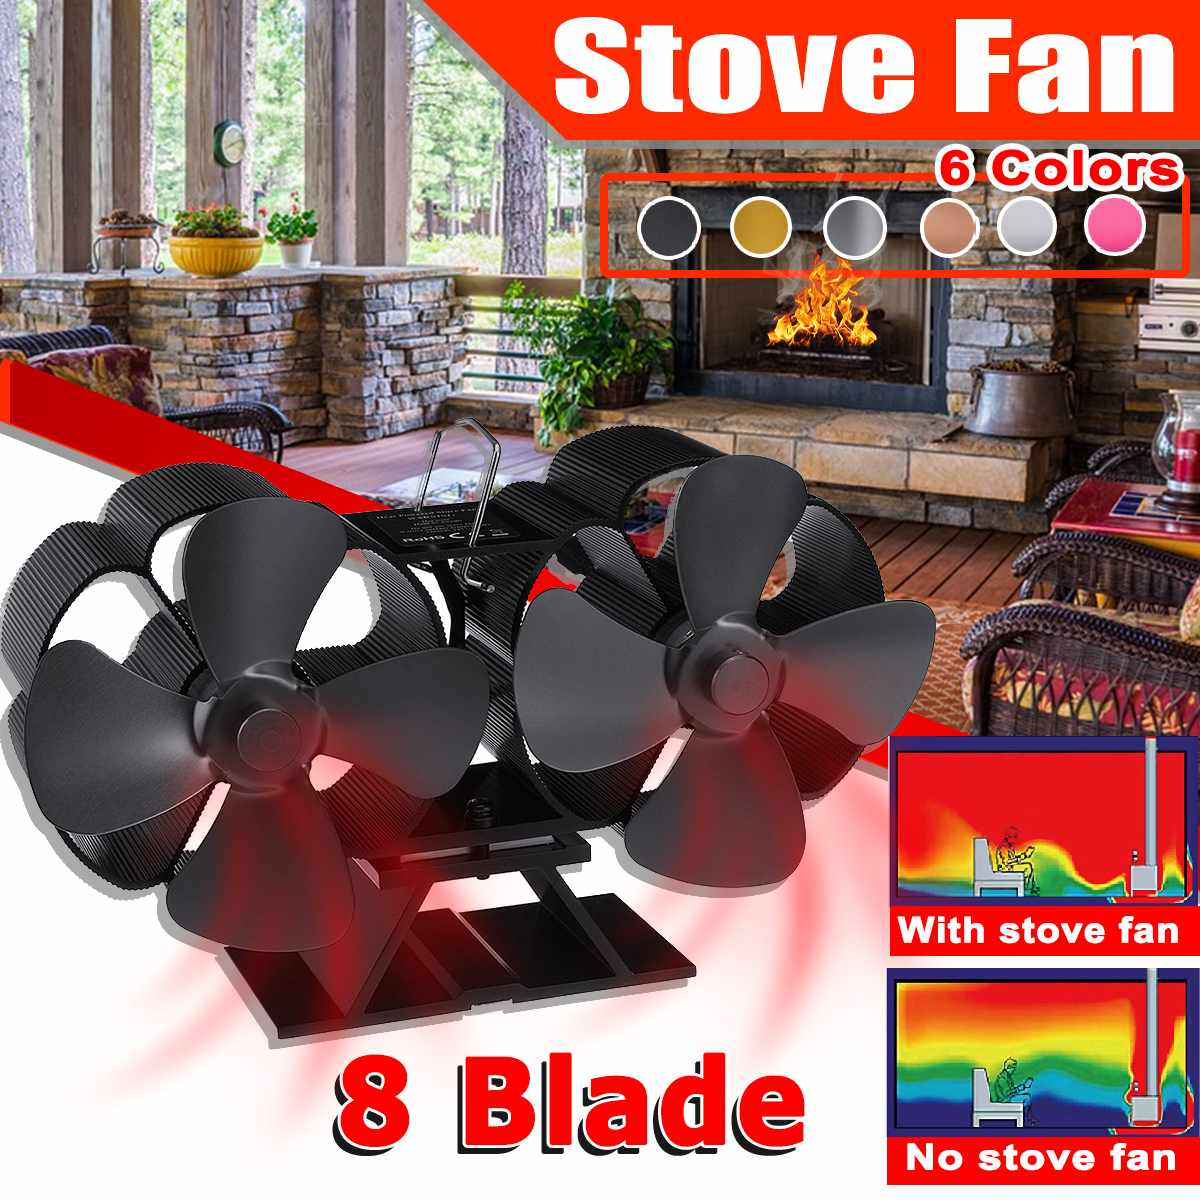 8 Blades Heat Powered Stove Fireplace Fan For Home Wood Burning Fireplace Eco-Friendly Circulate Warm Air Save Fuel Efficiently